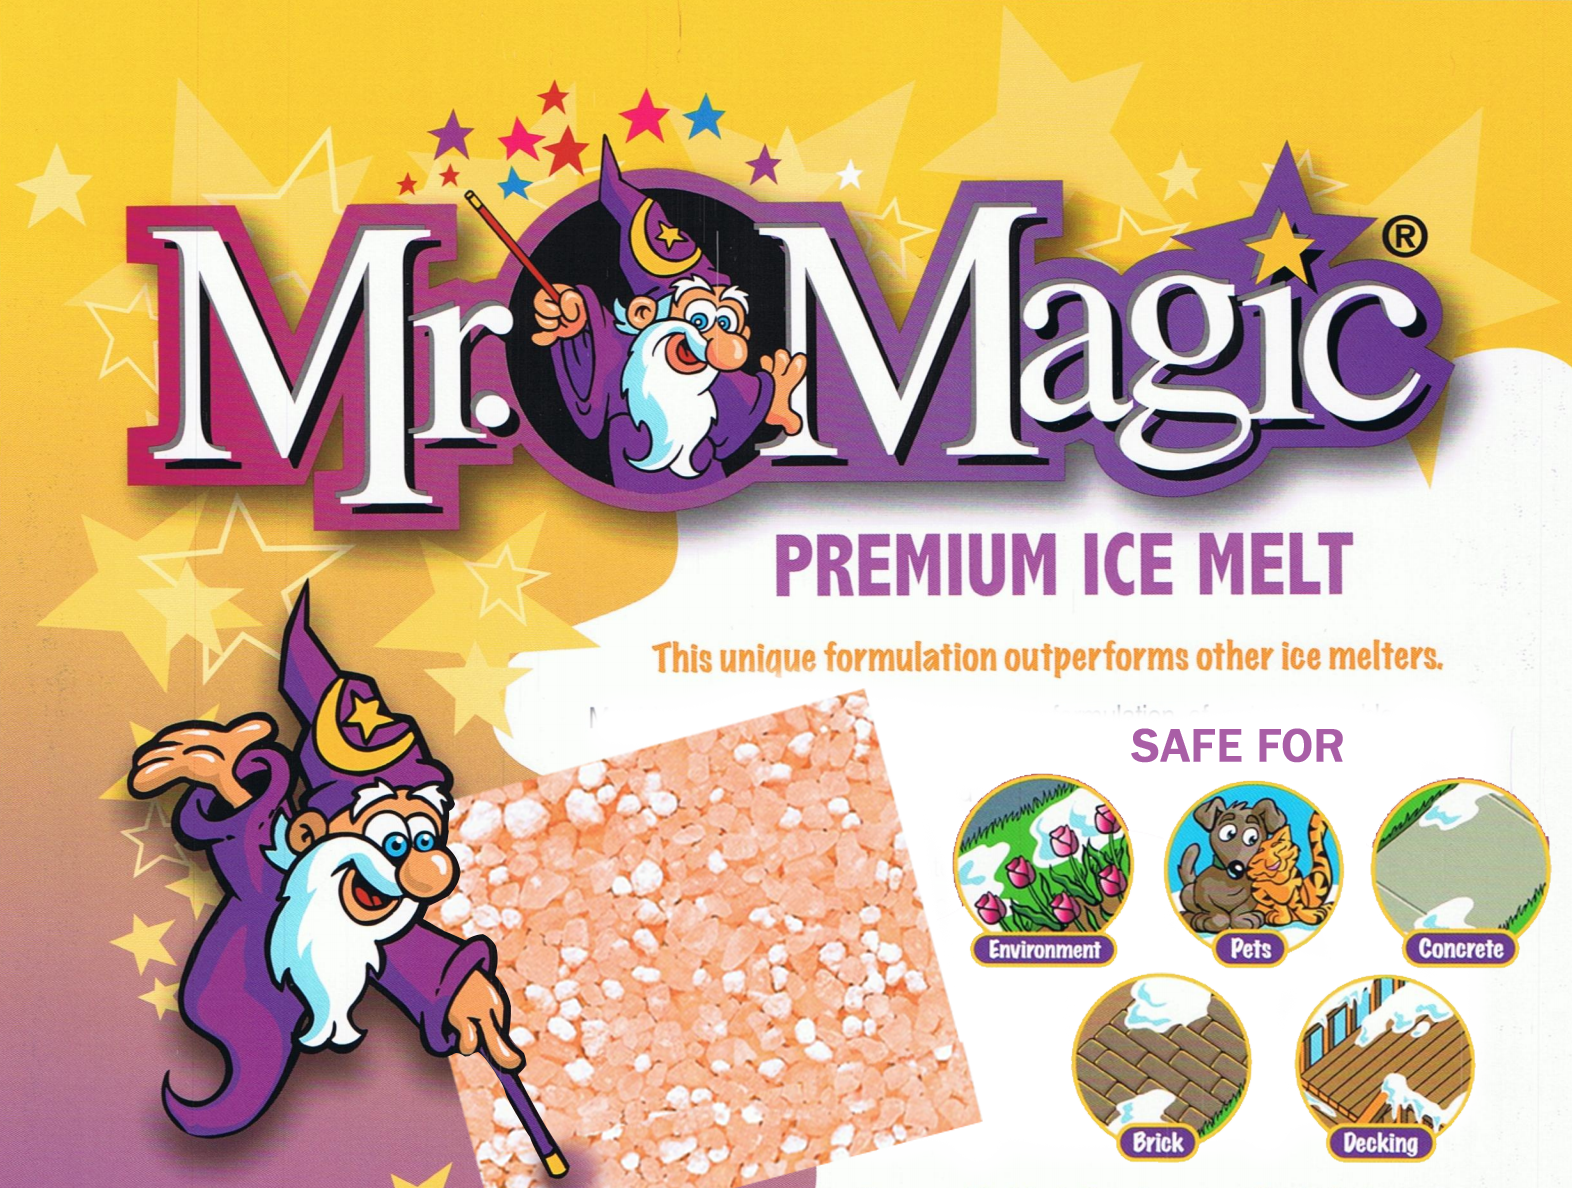 Mr. Magic Premium Ice Melt, Mr. Magic